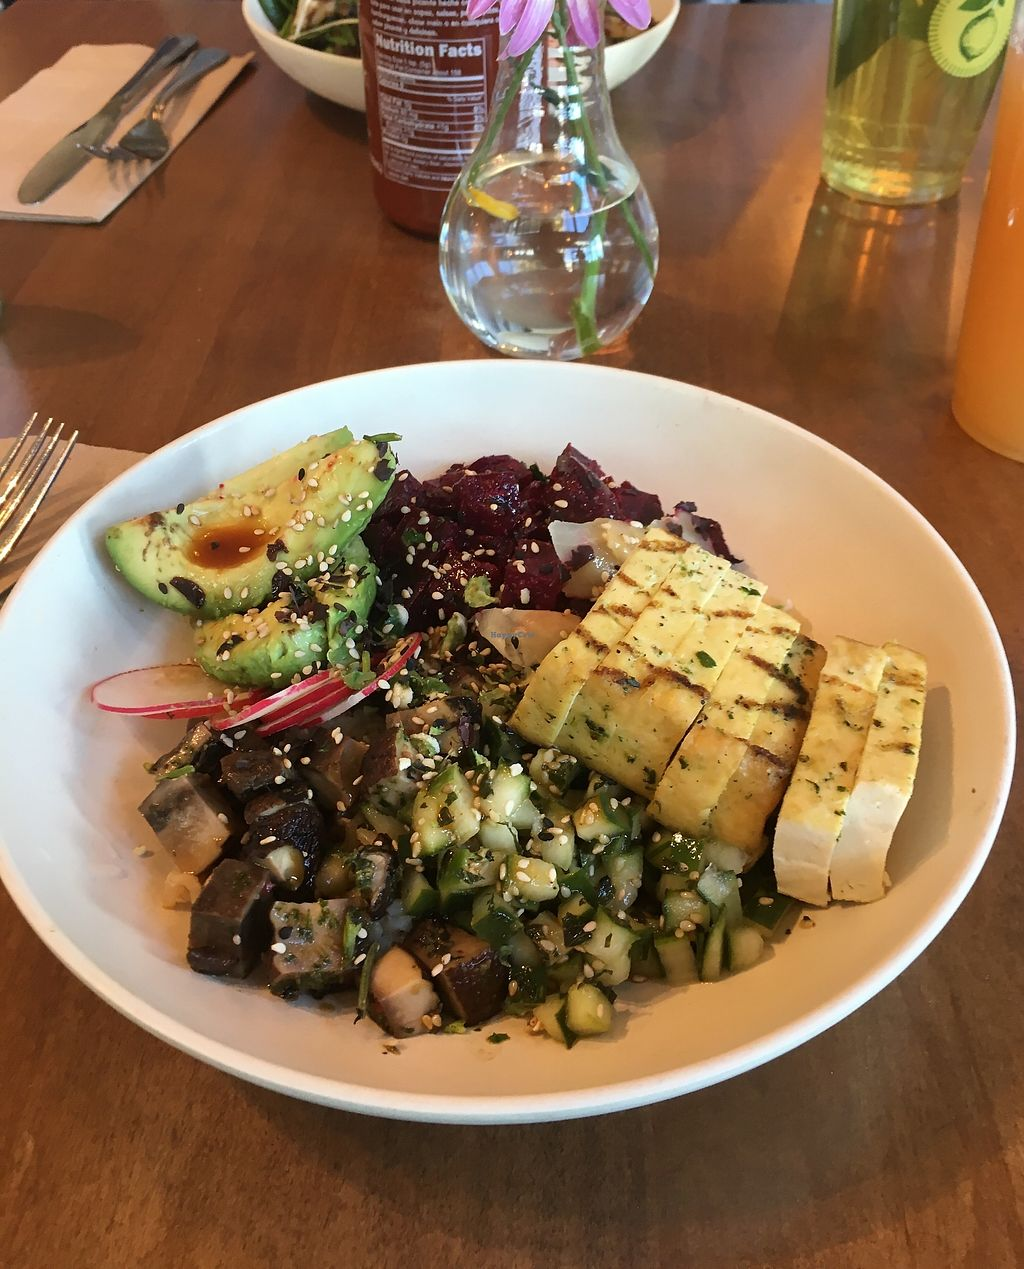 """Photo of Flower Child - Downtown  by <a href=""""/members/profile/lysi"""">lysi</a> <br/>Vegan poke bowl  <br/> January 14, 2018  - <a href='/contact/abuse/image/109440/346339'>Report</a>"""